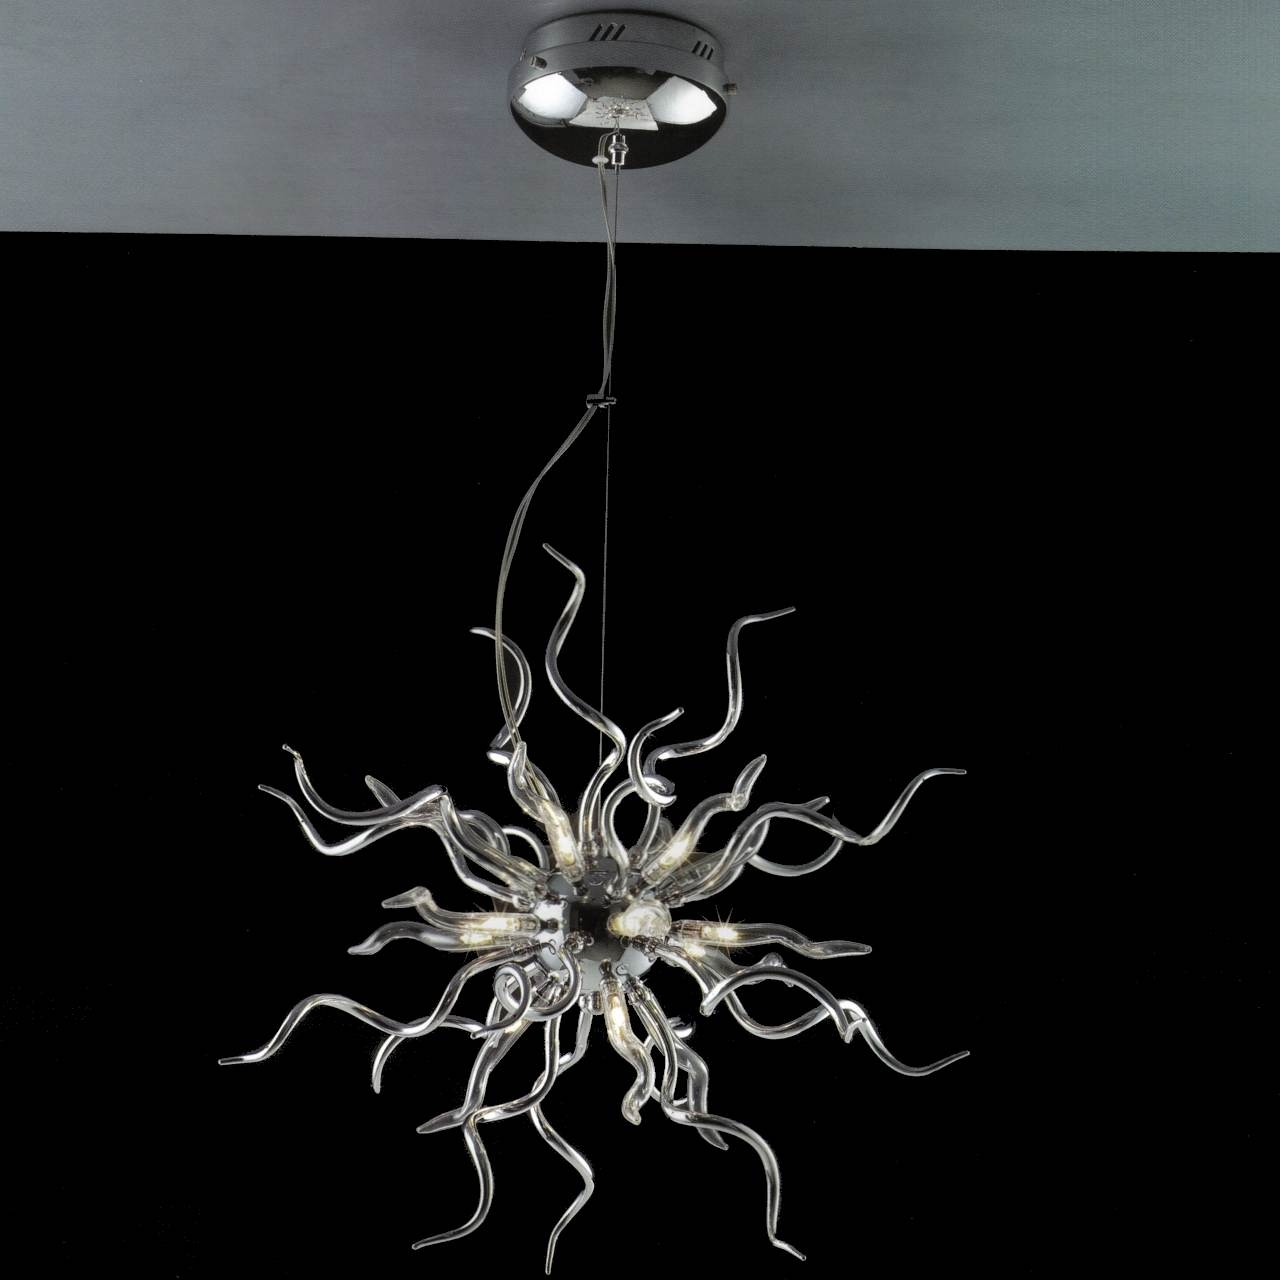 Brizzo Lighting Stores 23 Medusa Modern Round Chandelier Throughout Chrome And Glass Chandelier (Image 4 of 15)